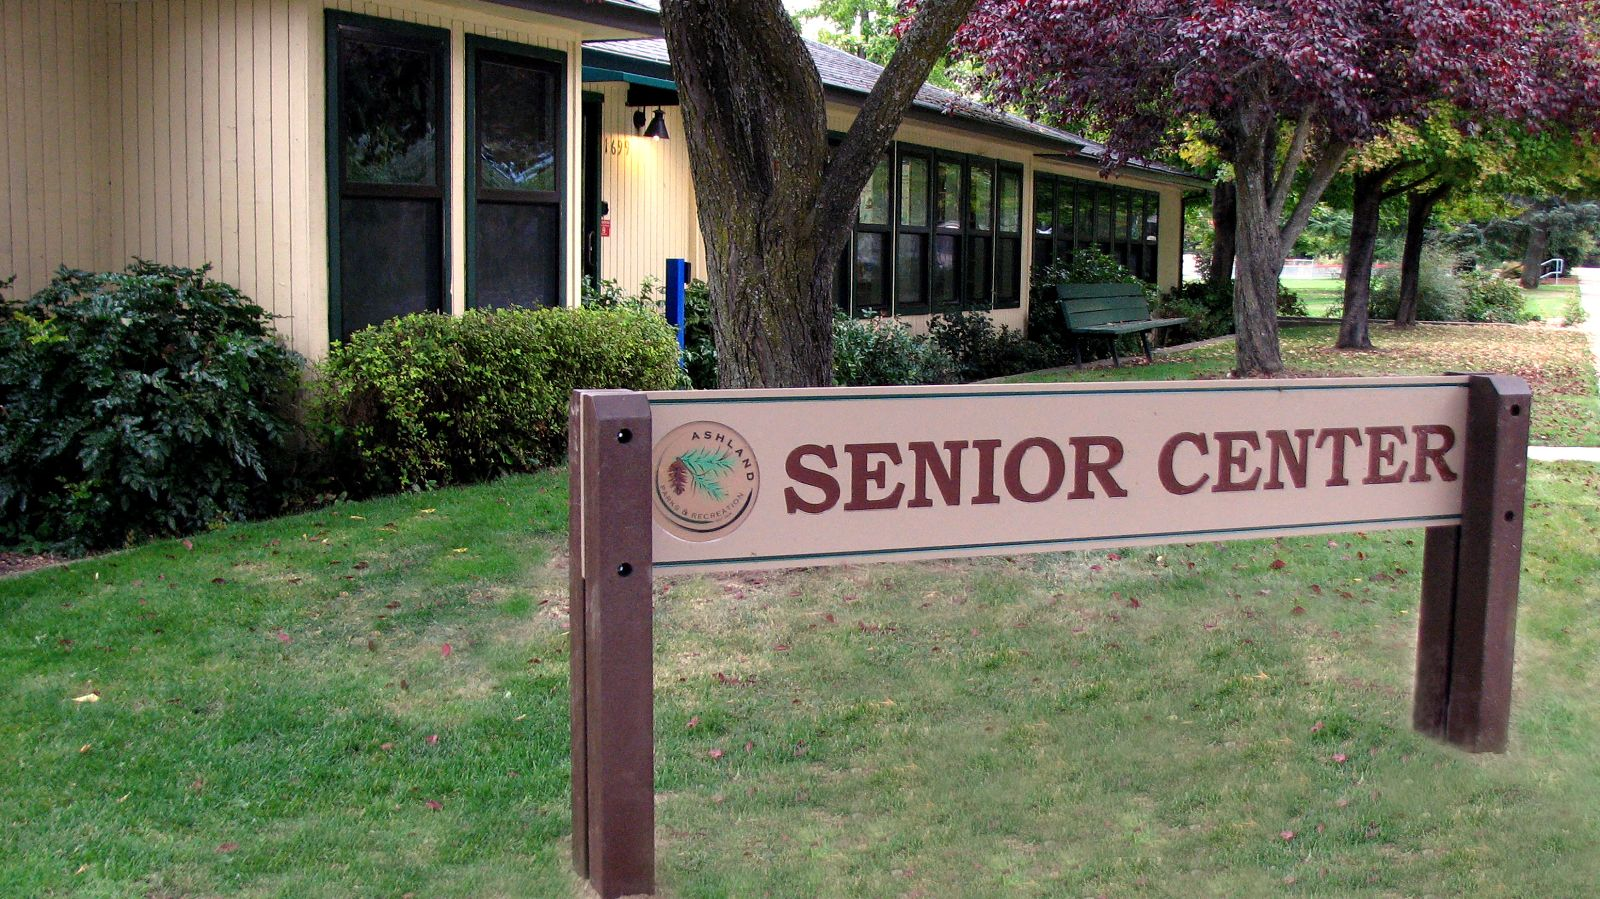 Ashland Senior Center